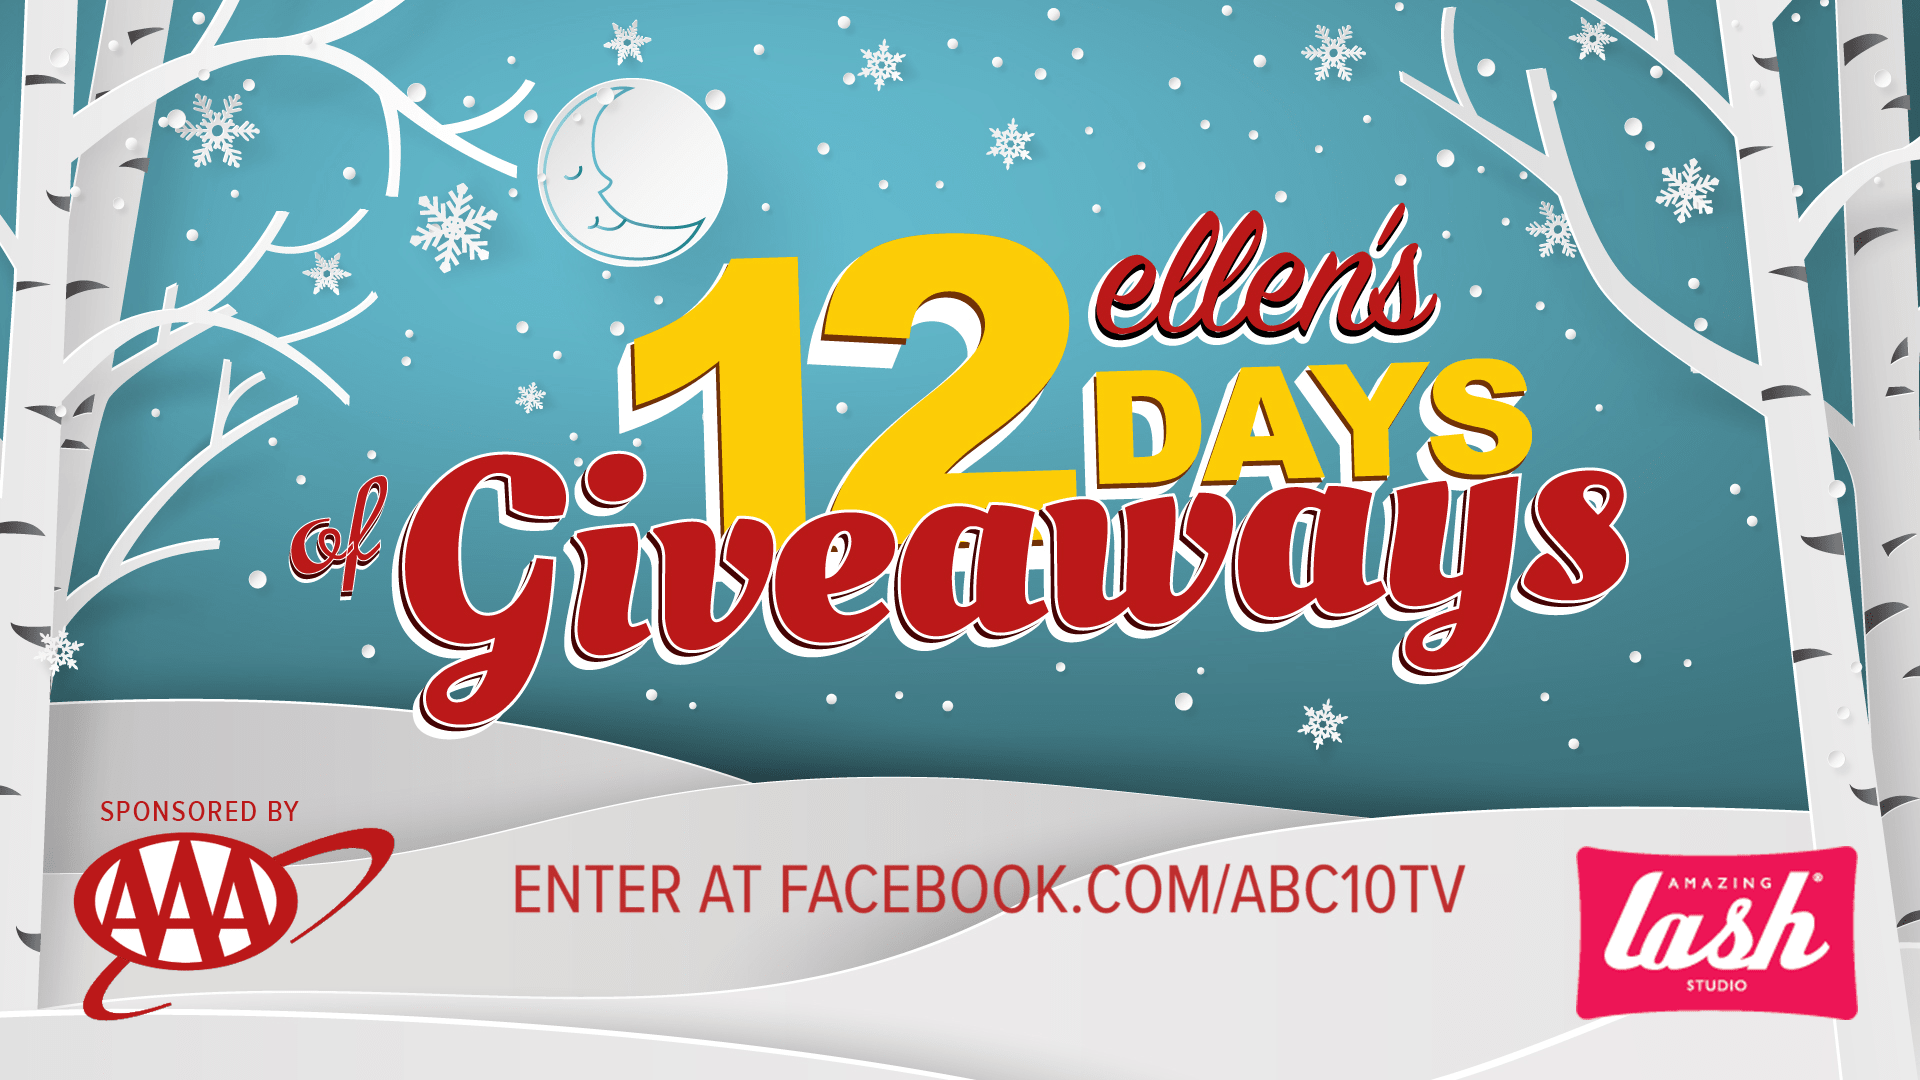 enter to win 2 tickets to see a live 12 days of giveaways ellen taping on november 26th